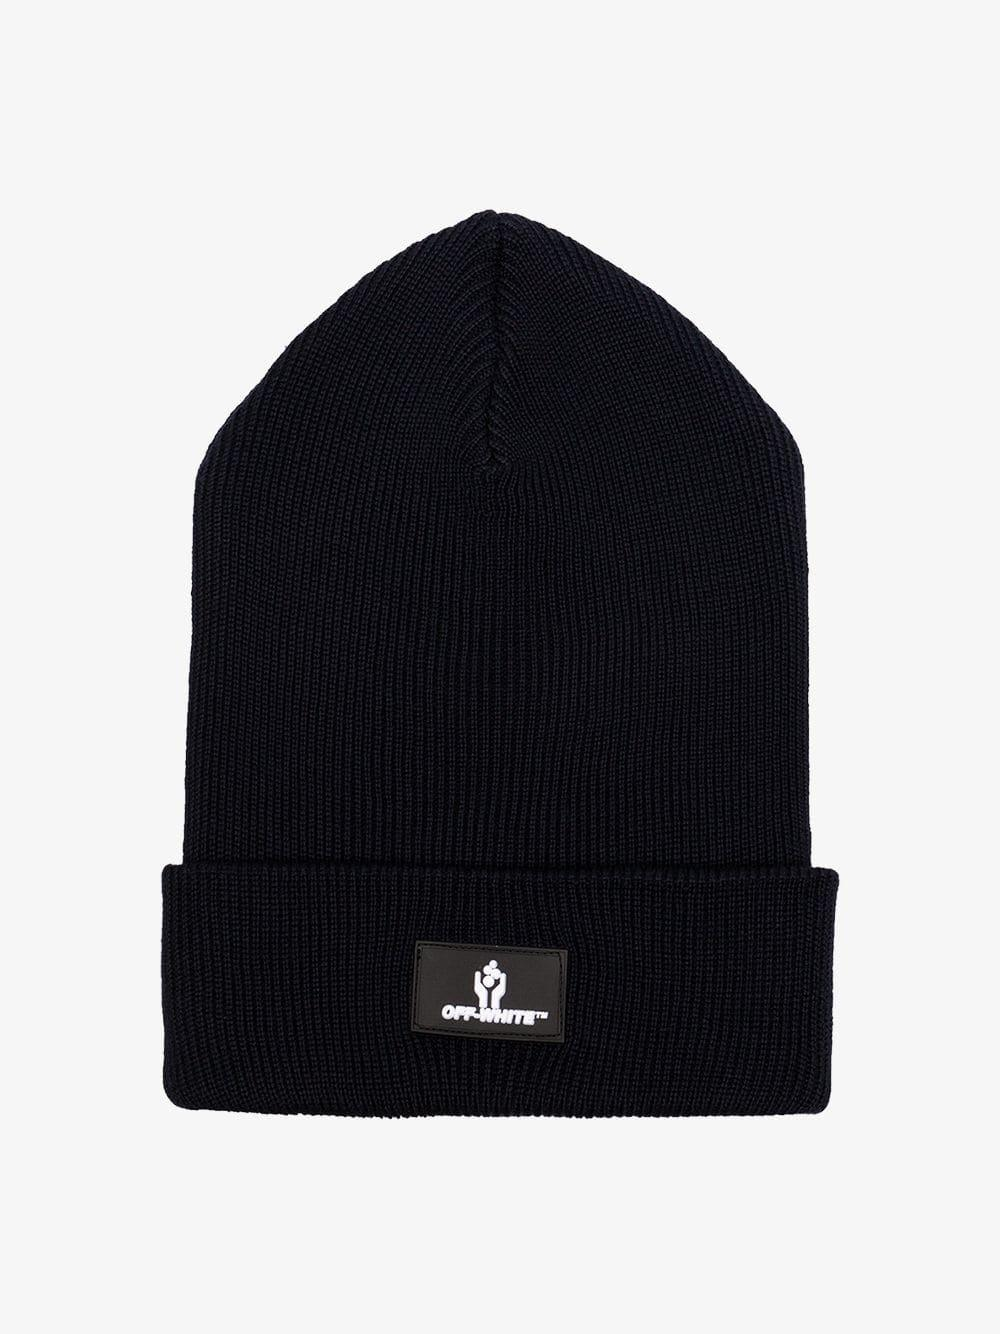 552fe26a3ad78 Off-White c o Virgil Abloh - Black Logo Knitted Wool Beanie Hat for. View  fullscreen